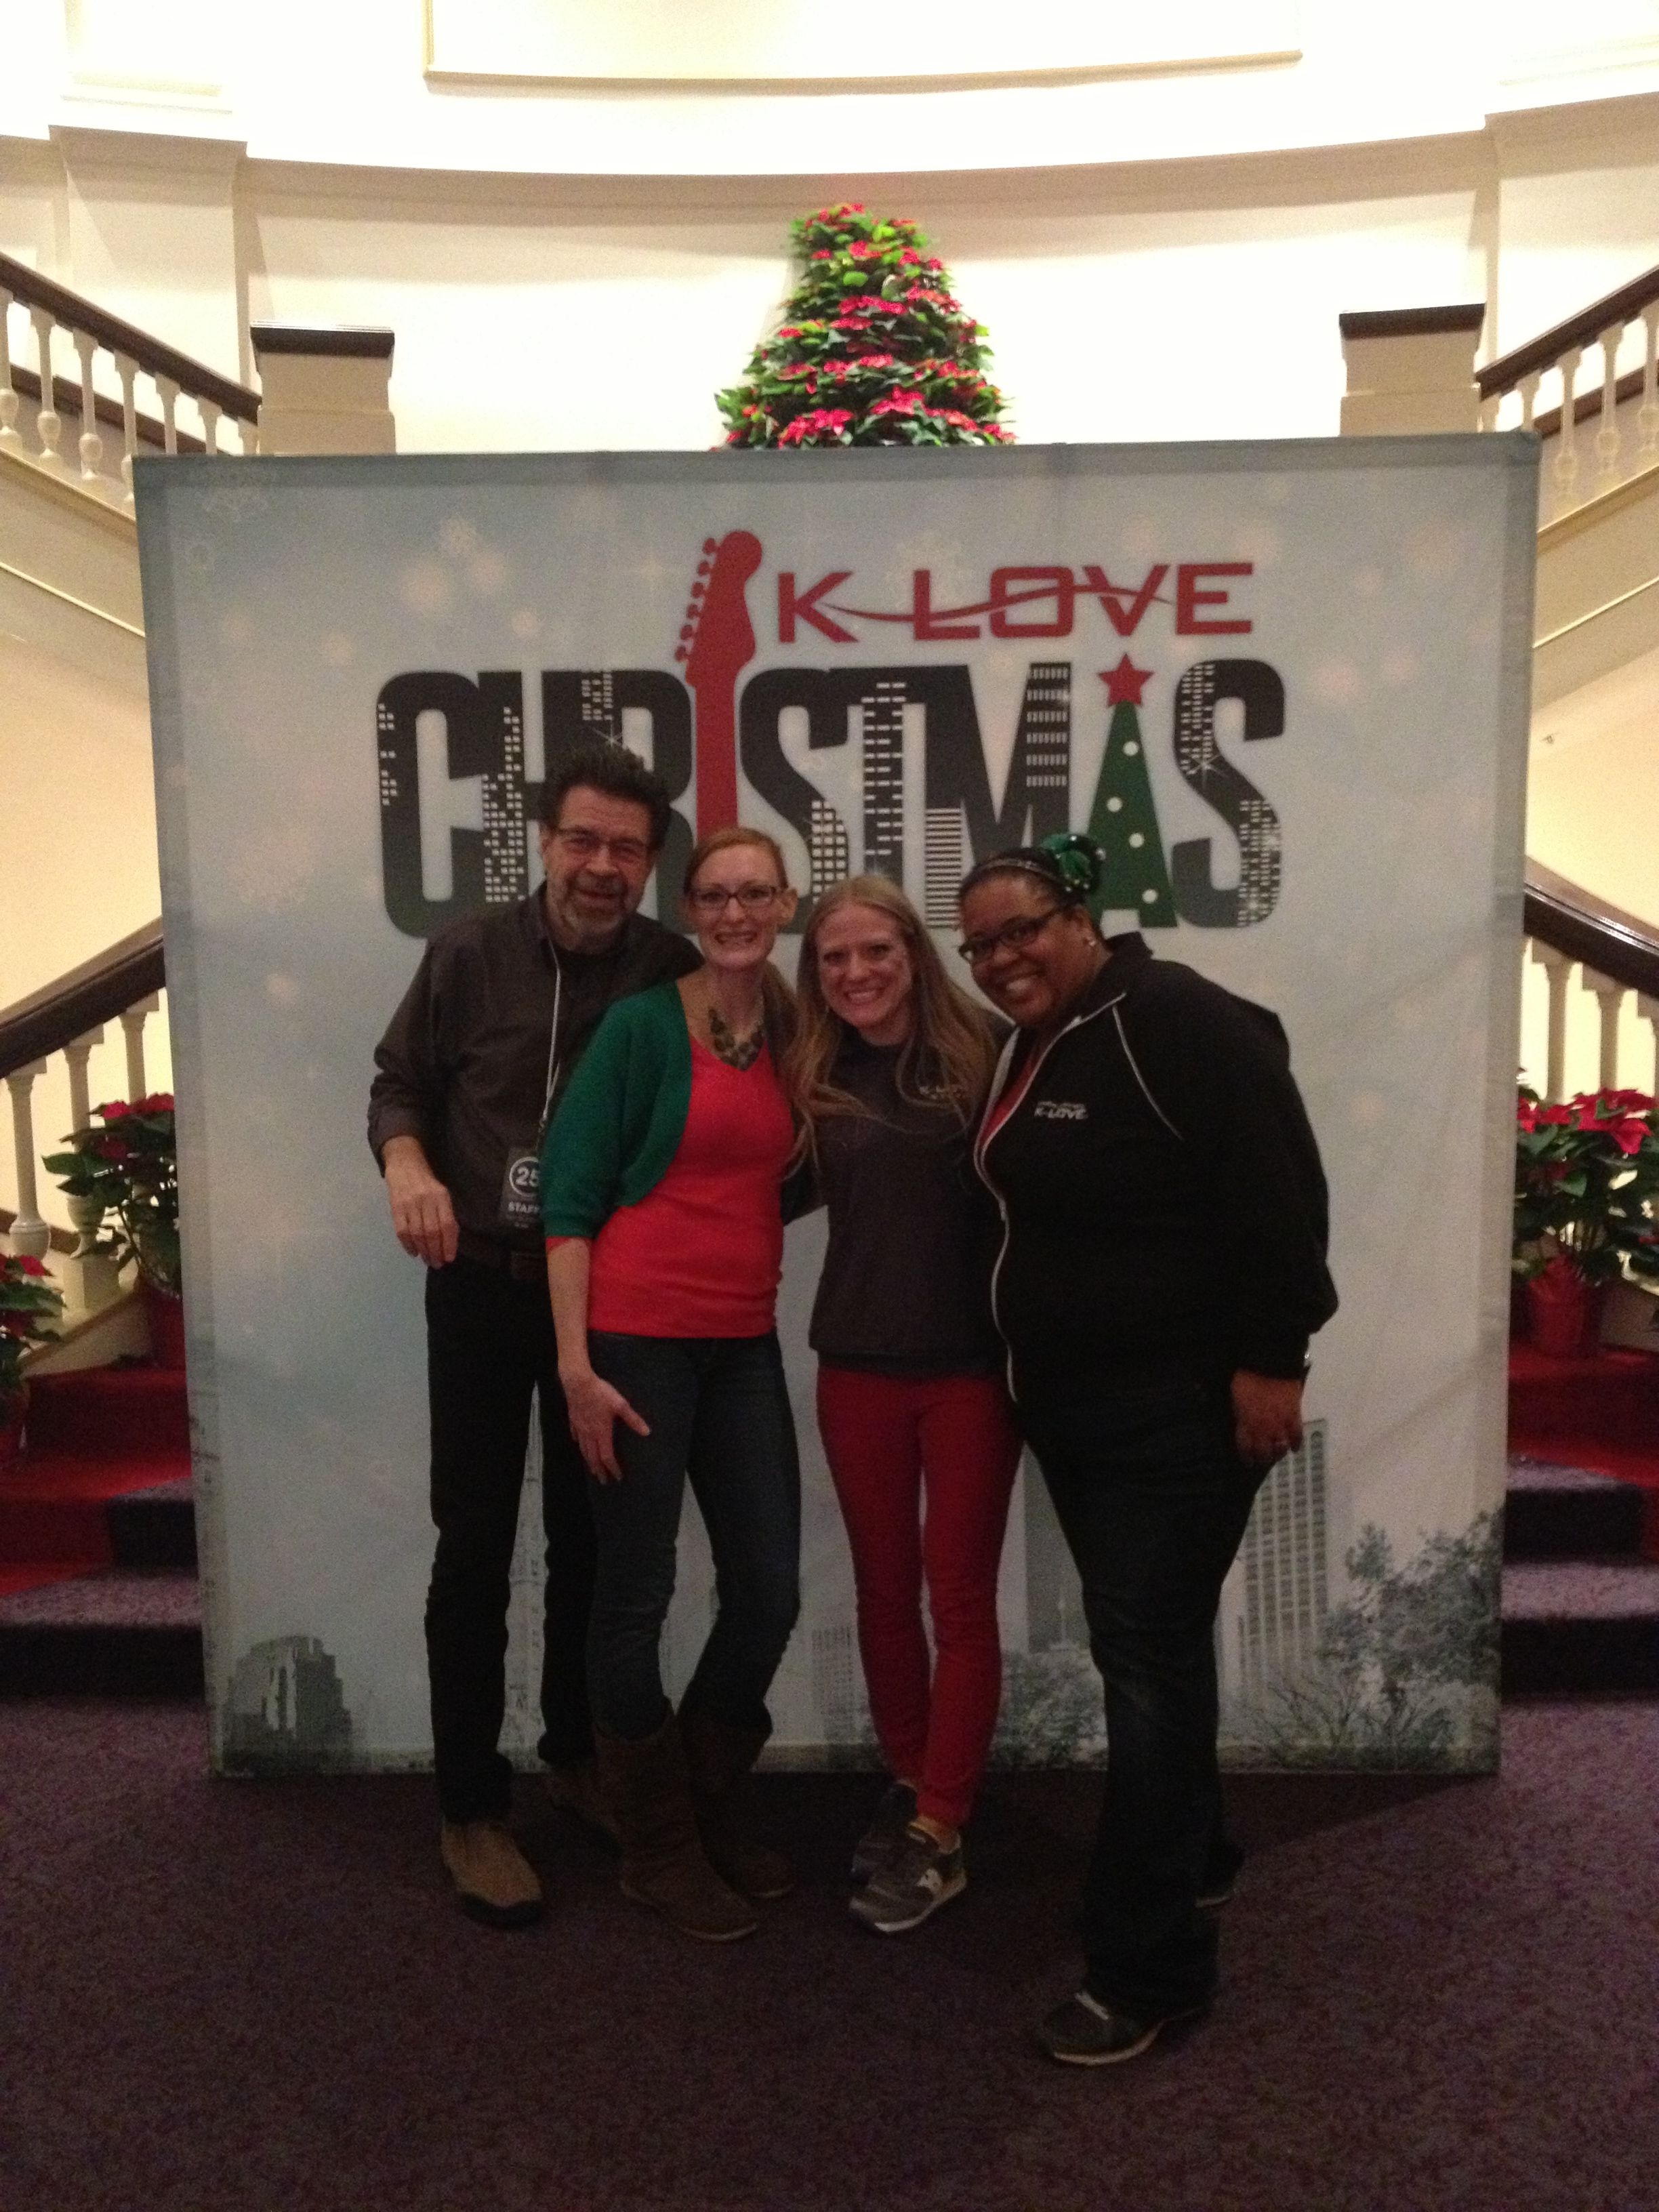 Klove Christmas.Larry And Lauren With The K Love Nashville Team Before The K